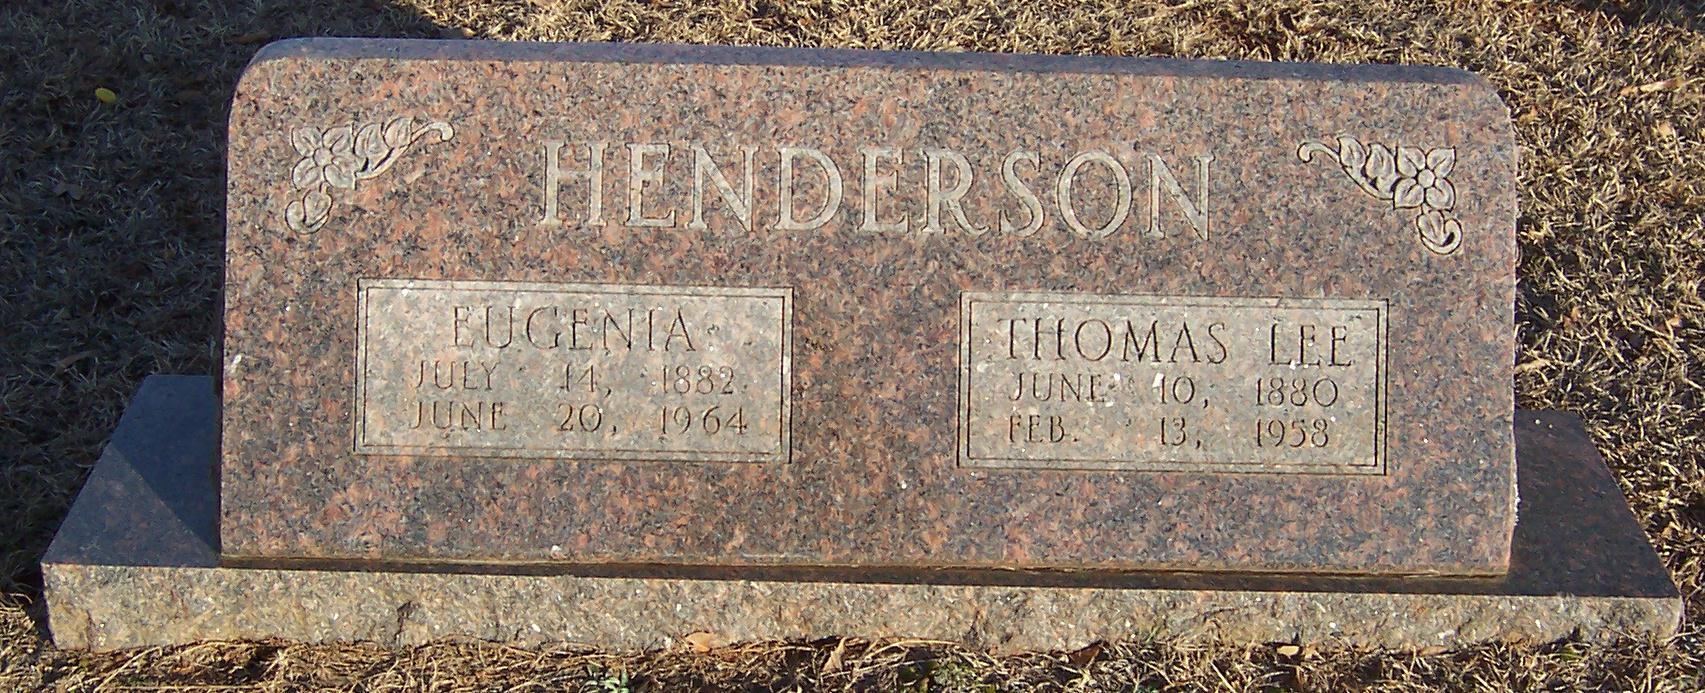 Thomas Lee Henderson